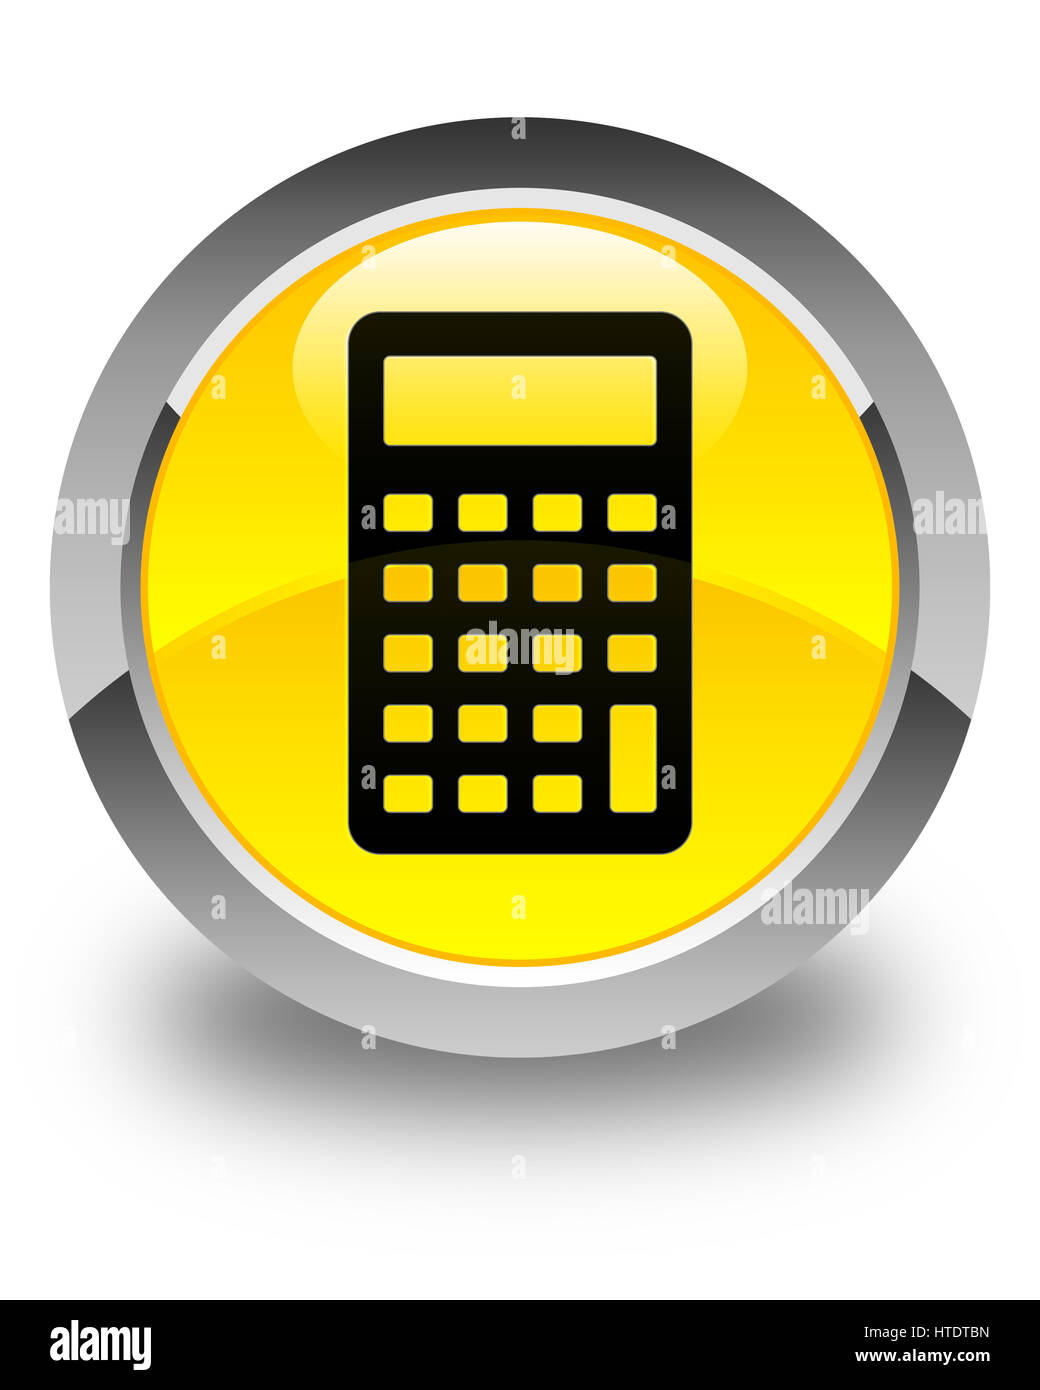 Calculator icon isolated on glossy yellow round button abstract illustration Stock Photo